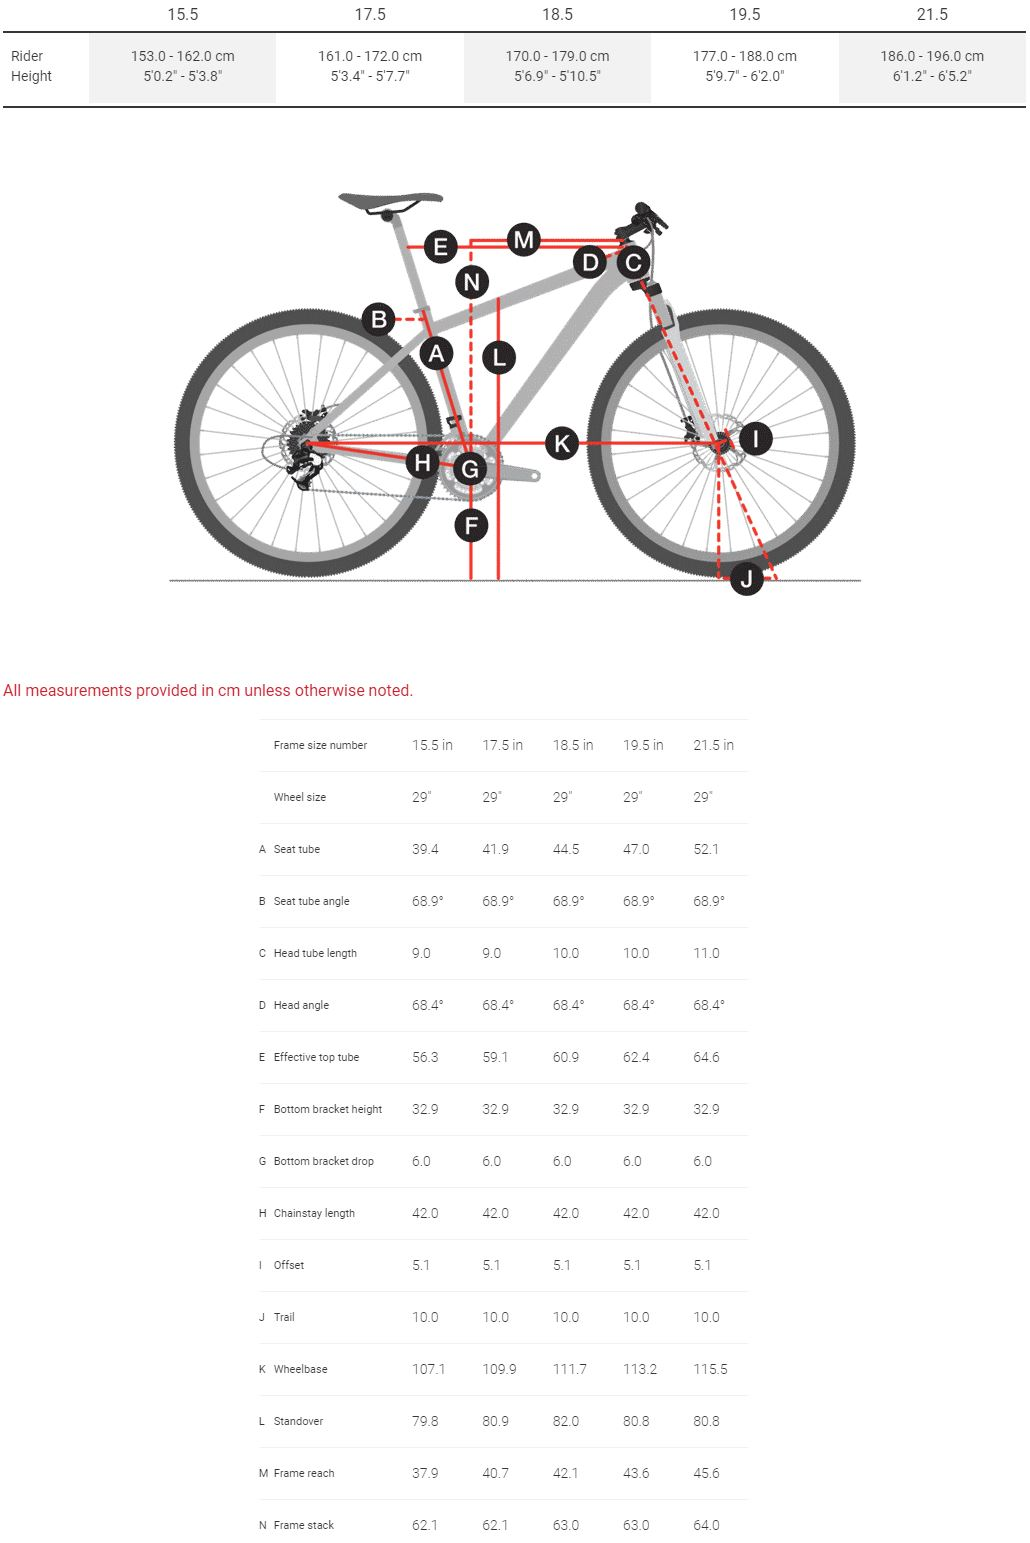 Trek Stache Geometry Chart